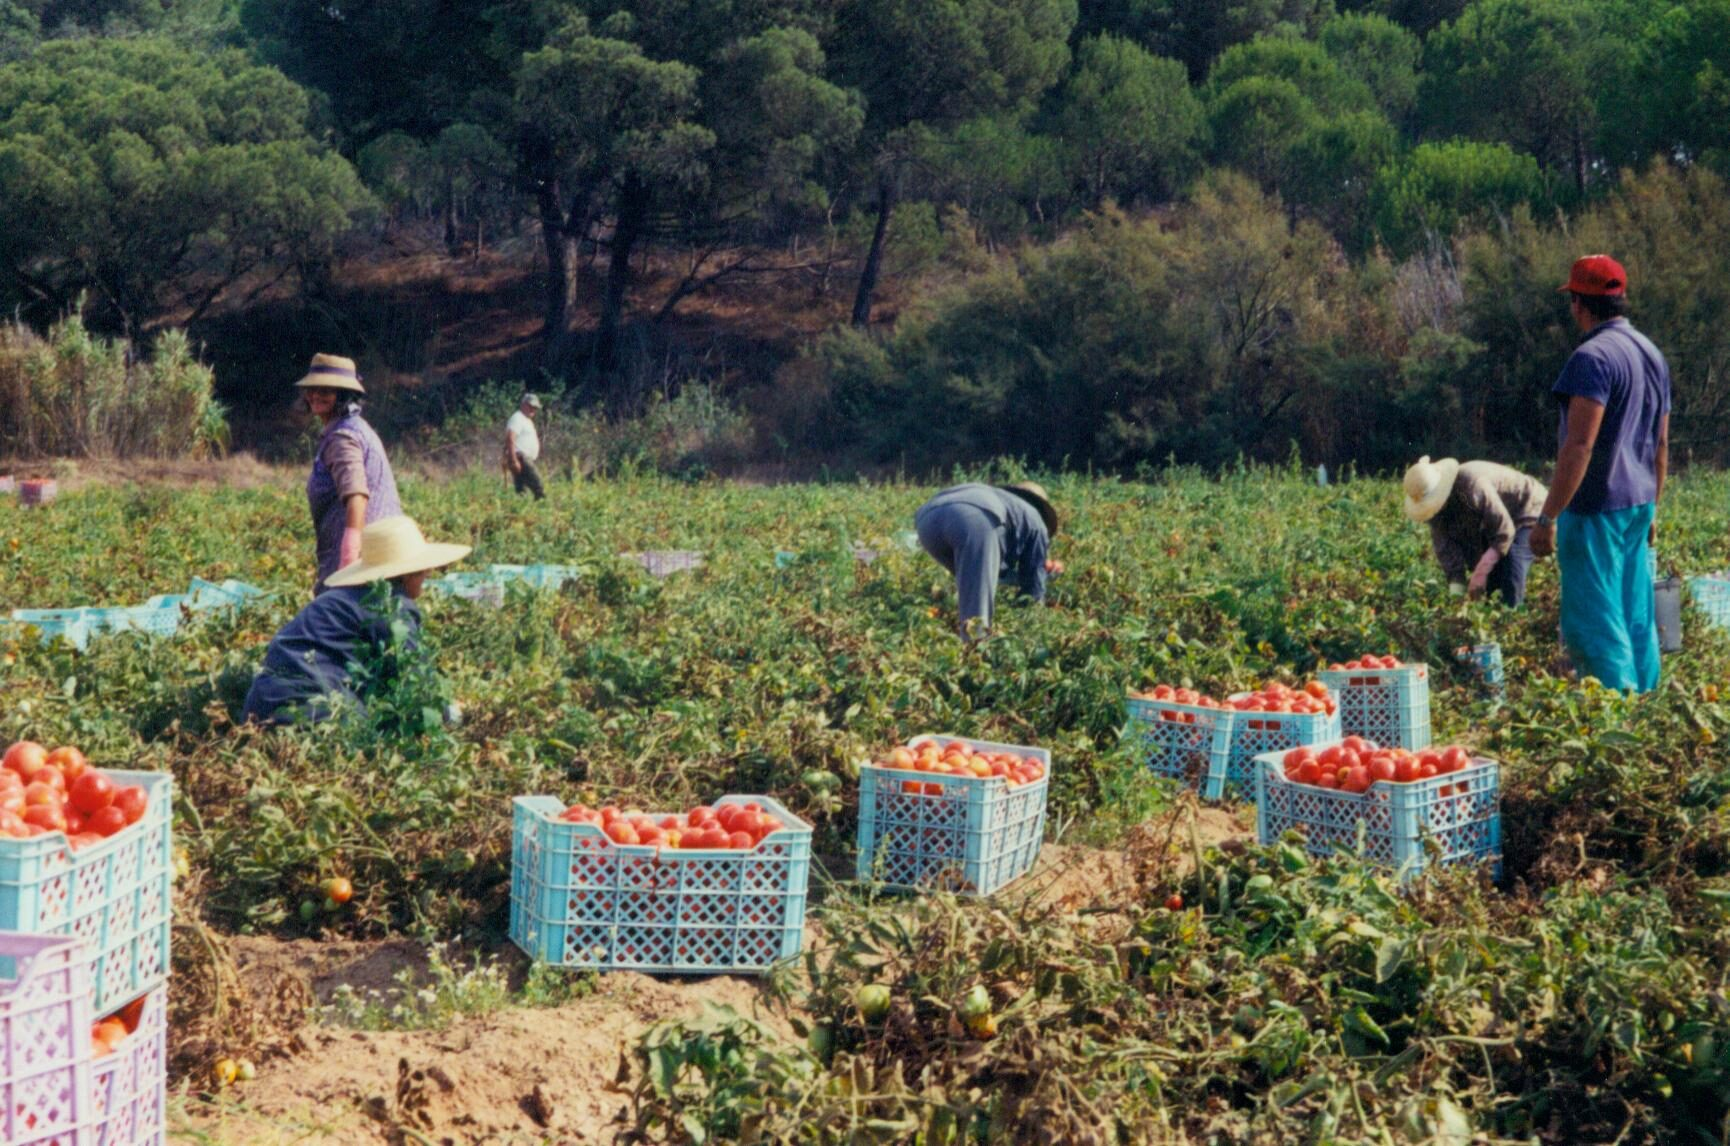 Undocumented workers are 'elephant in room'